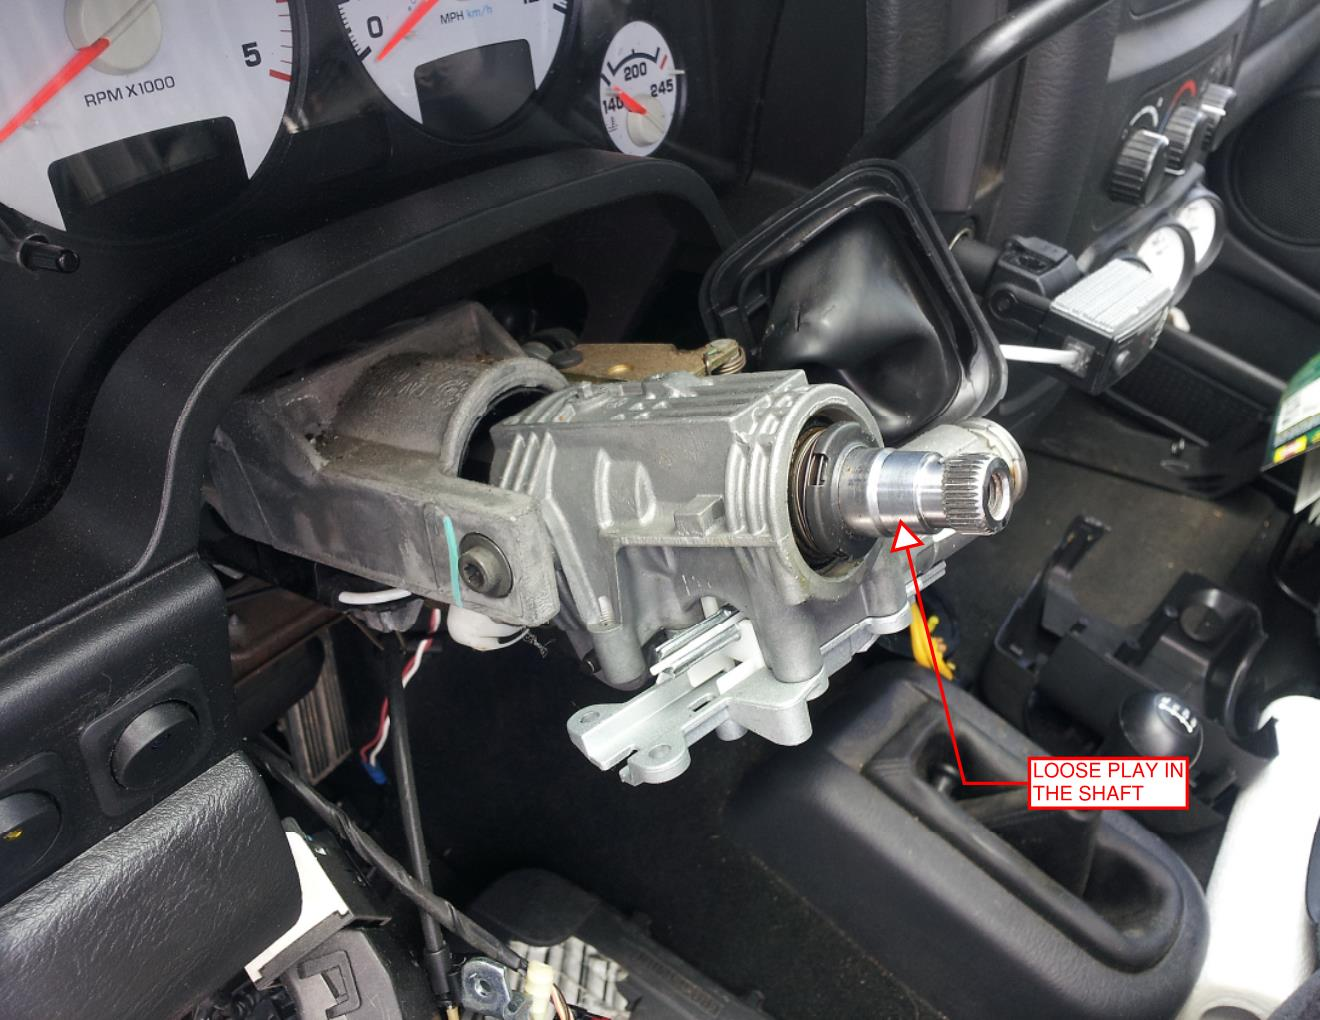 hight resolution of loose steering wheel steering wheel actually rocks back and forth not rotation dodge ram forum ram forums owners club ram truck forum